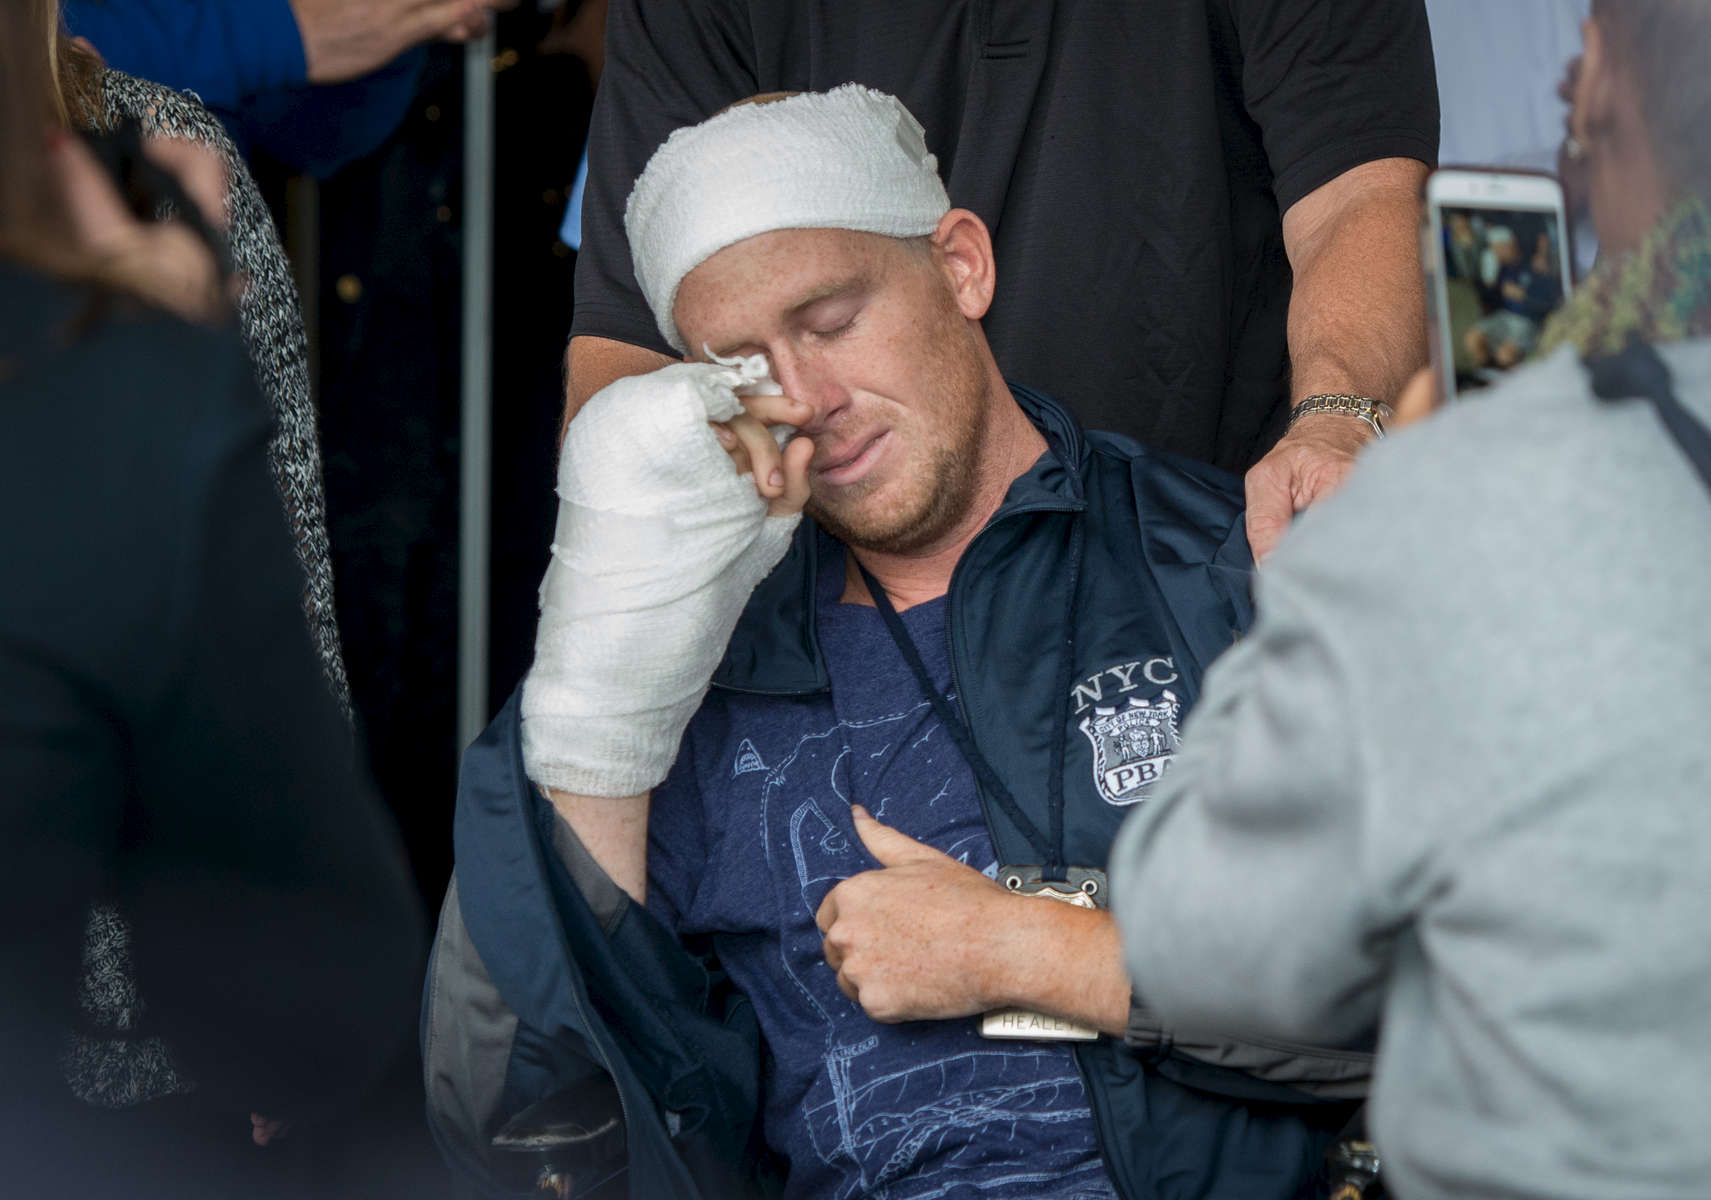 NYPD Police Officer Kenneth Healey, 25, who was brutally attacked in the head with a hatchet by Zale Thompson, an emotionally disturbed man, wipes his tears away as he is released from Jamaica Hospital Medical Center in Queens on Wednesday, October 29, 2014. He will be transferred to a rehab center.